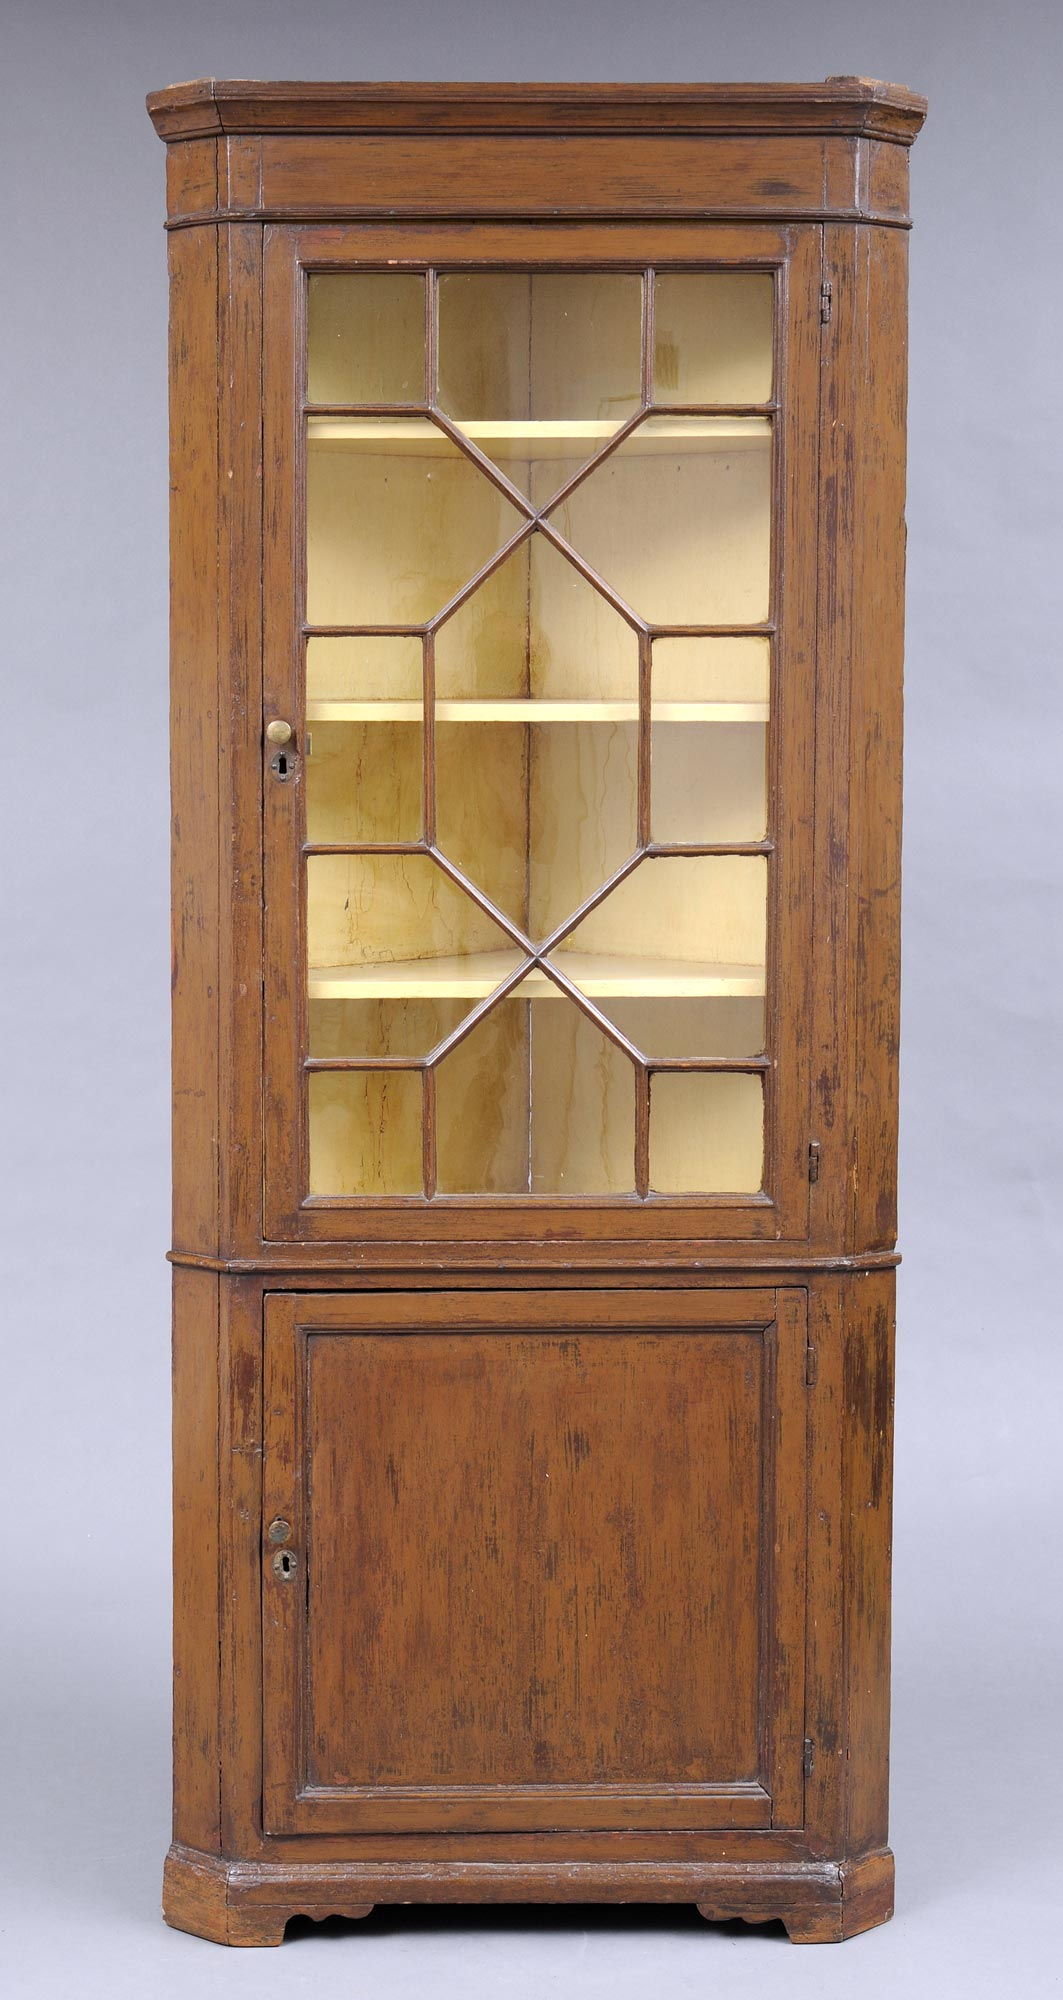 Product » English Pine Corner Cupboard